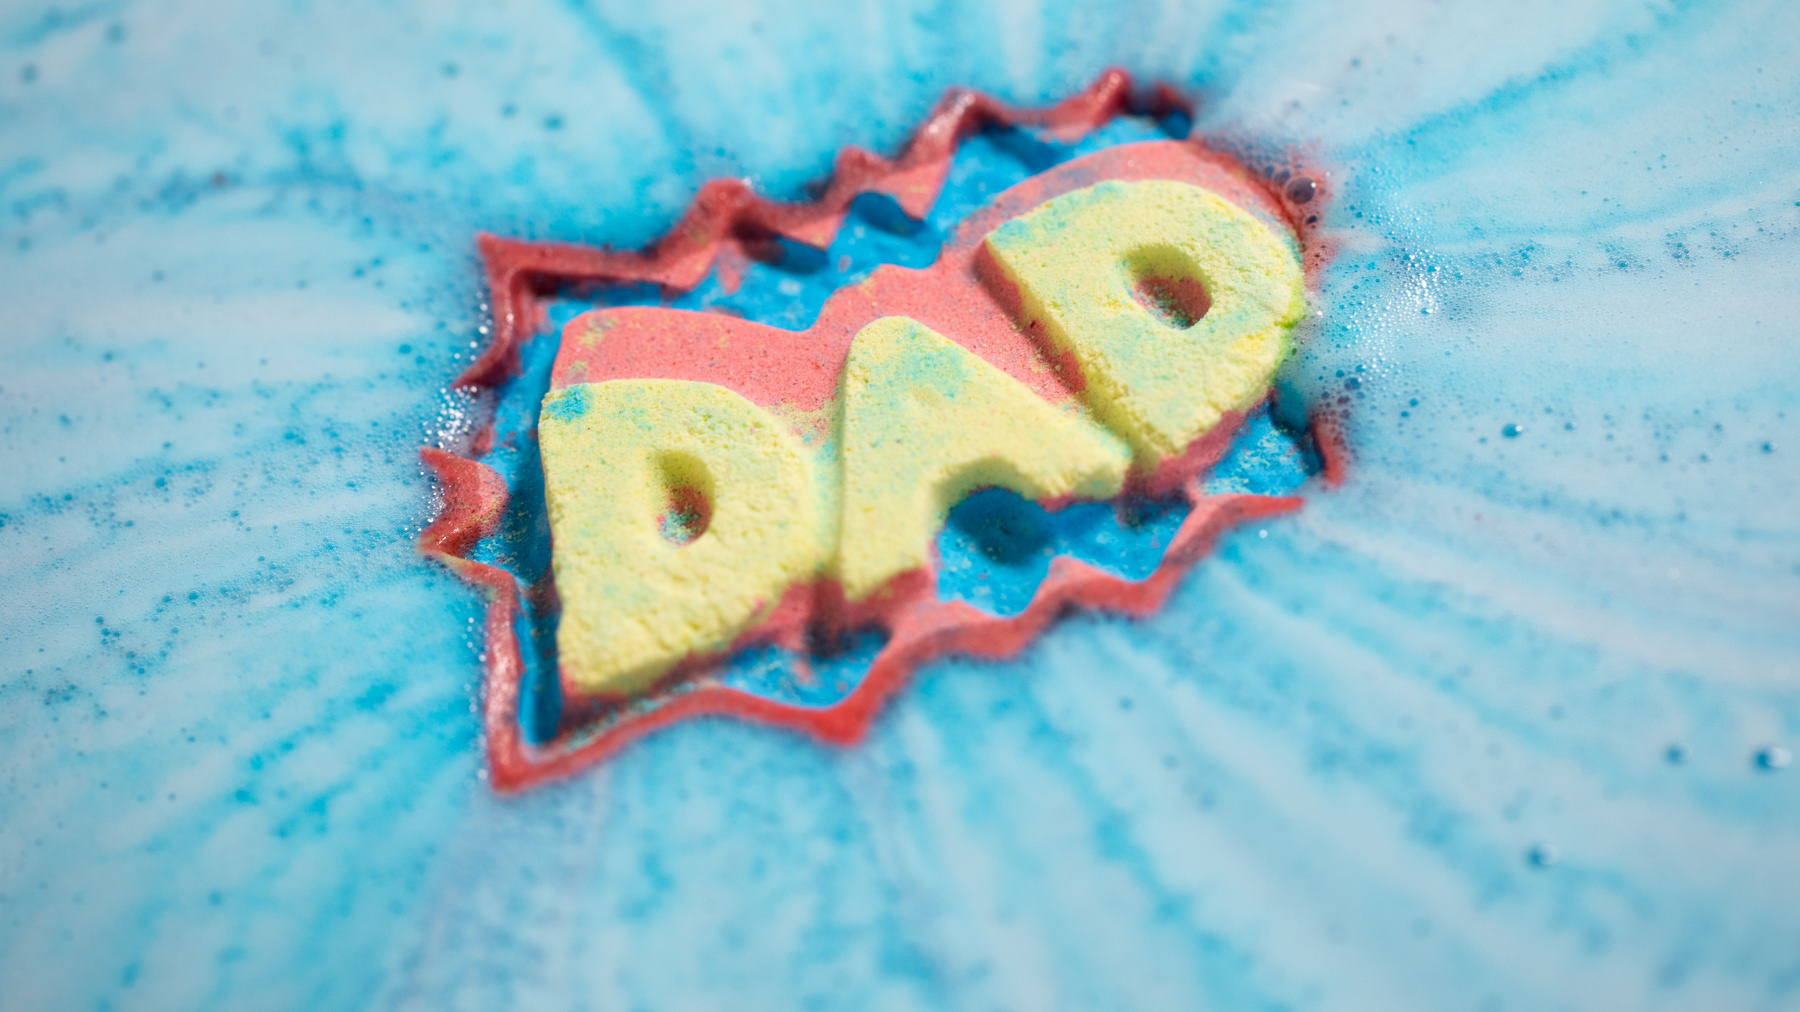 blue red and yellow bath bomb with 'dad' written on it in foam